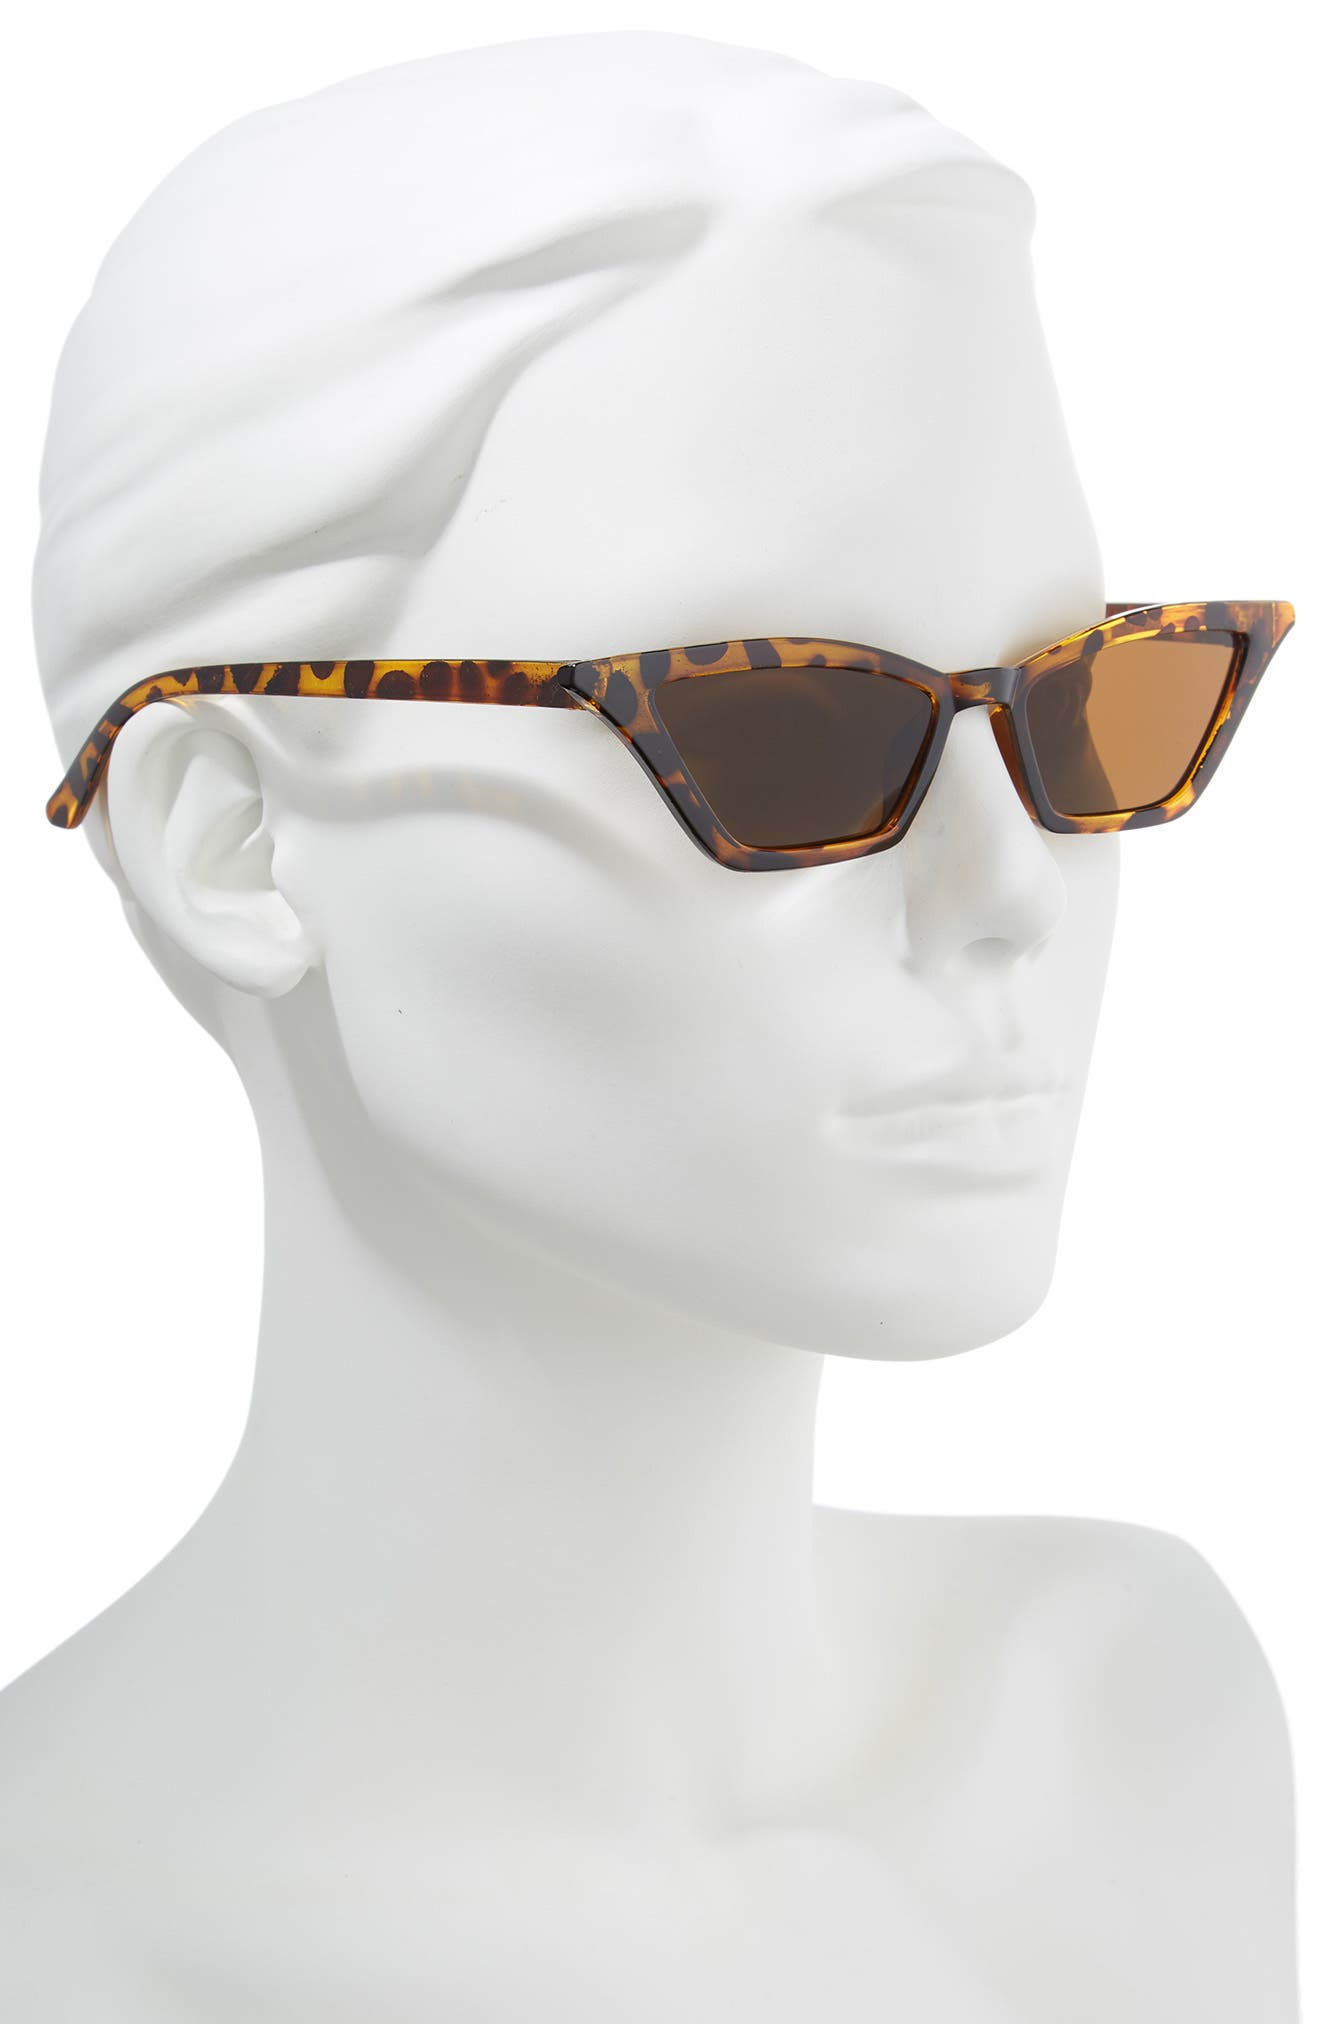 50mm Geometric Sunglasses,                             Alternate thumbnail 2, color,                             Tortoise